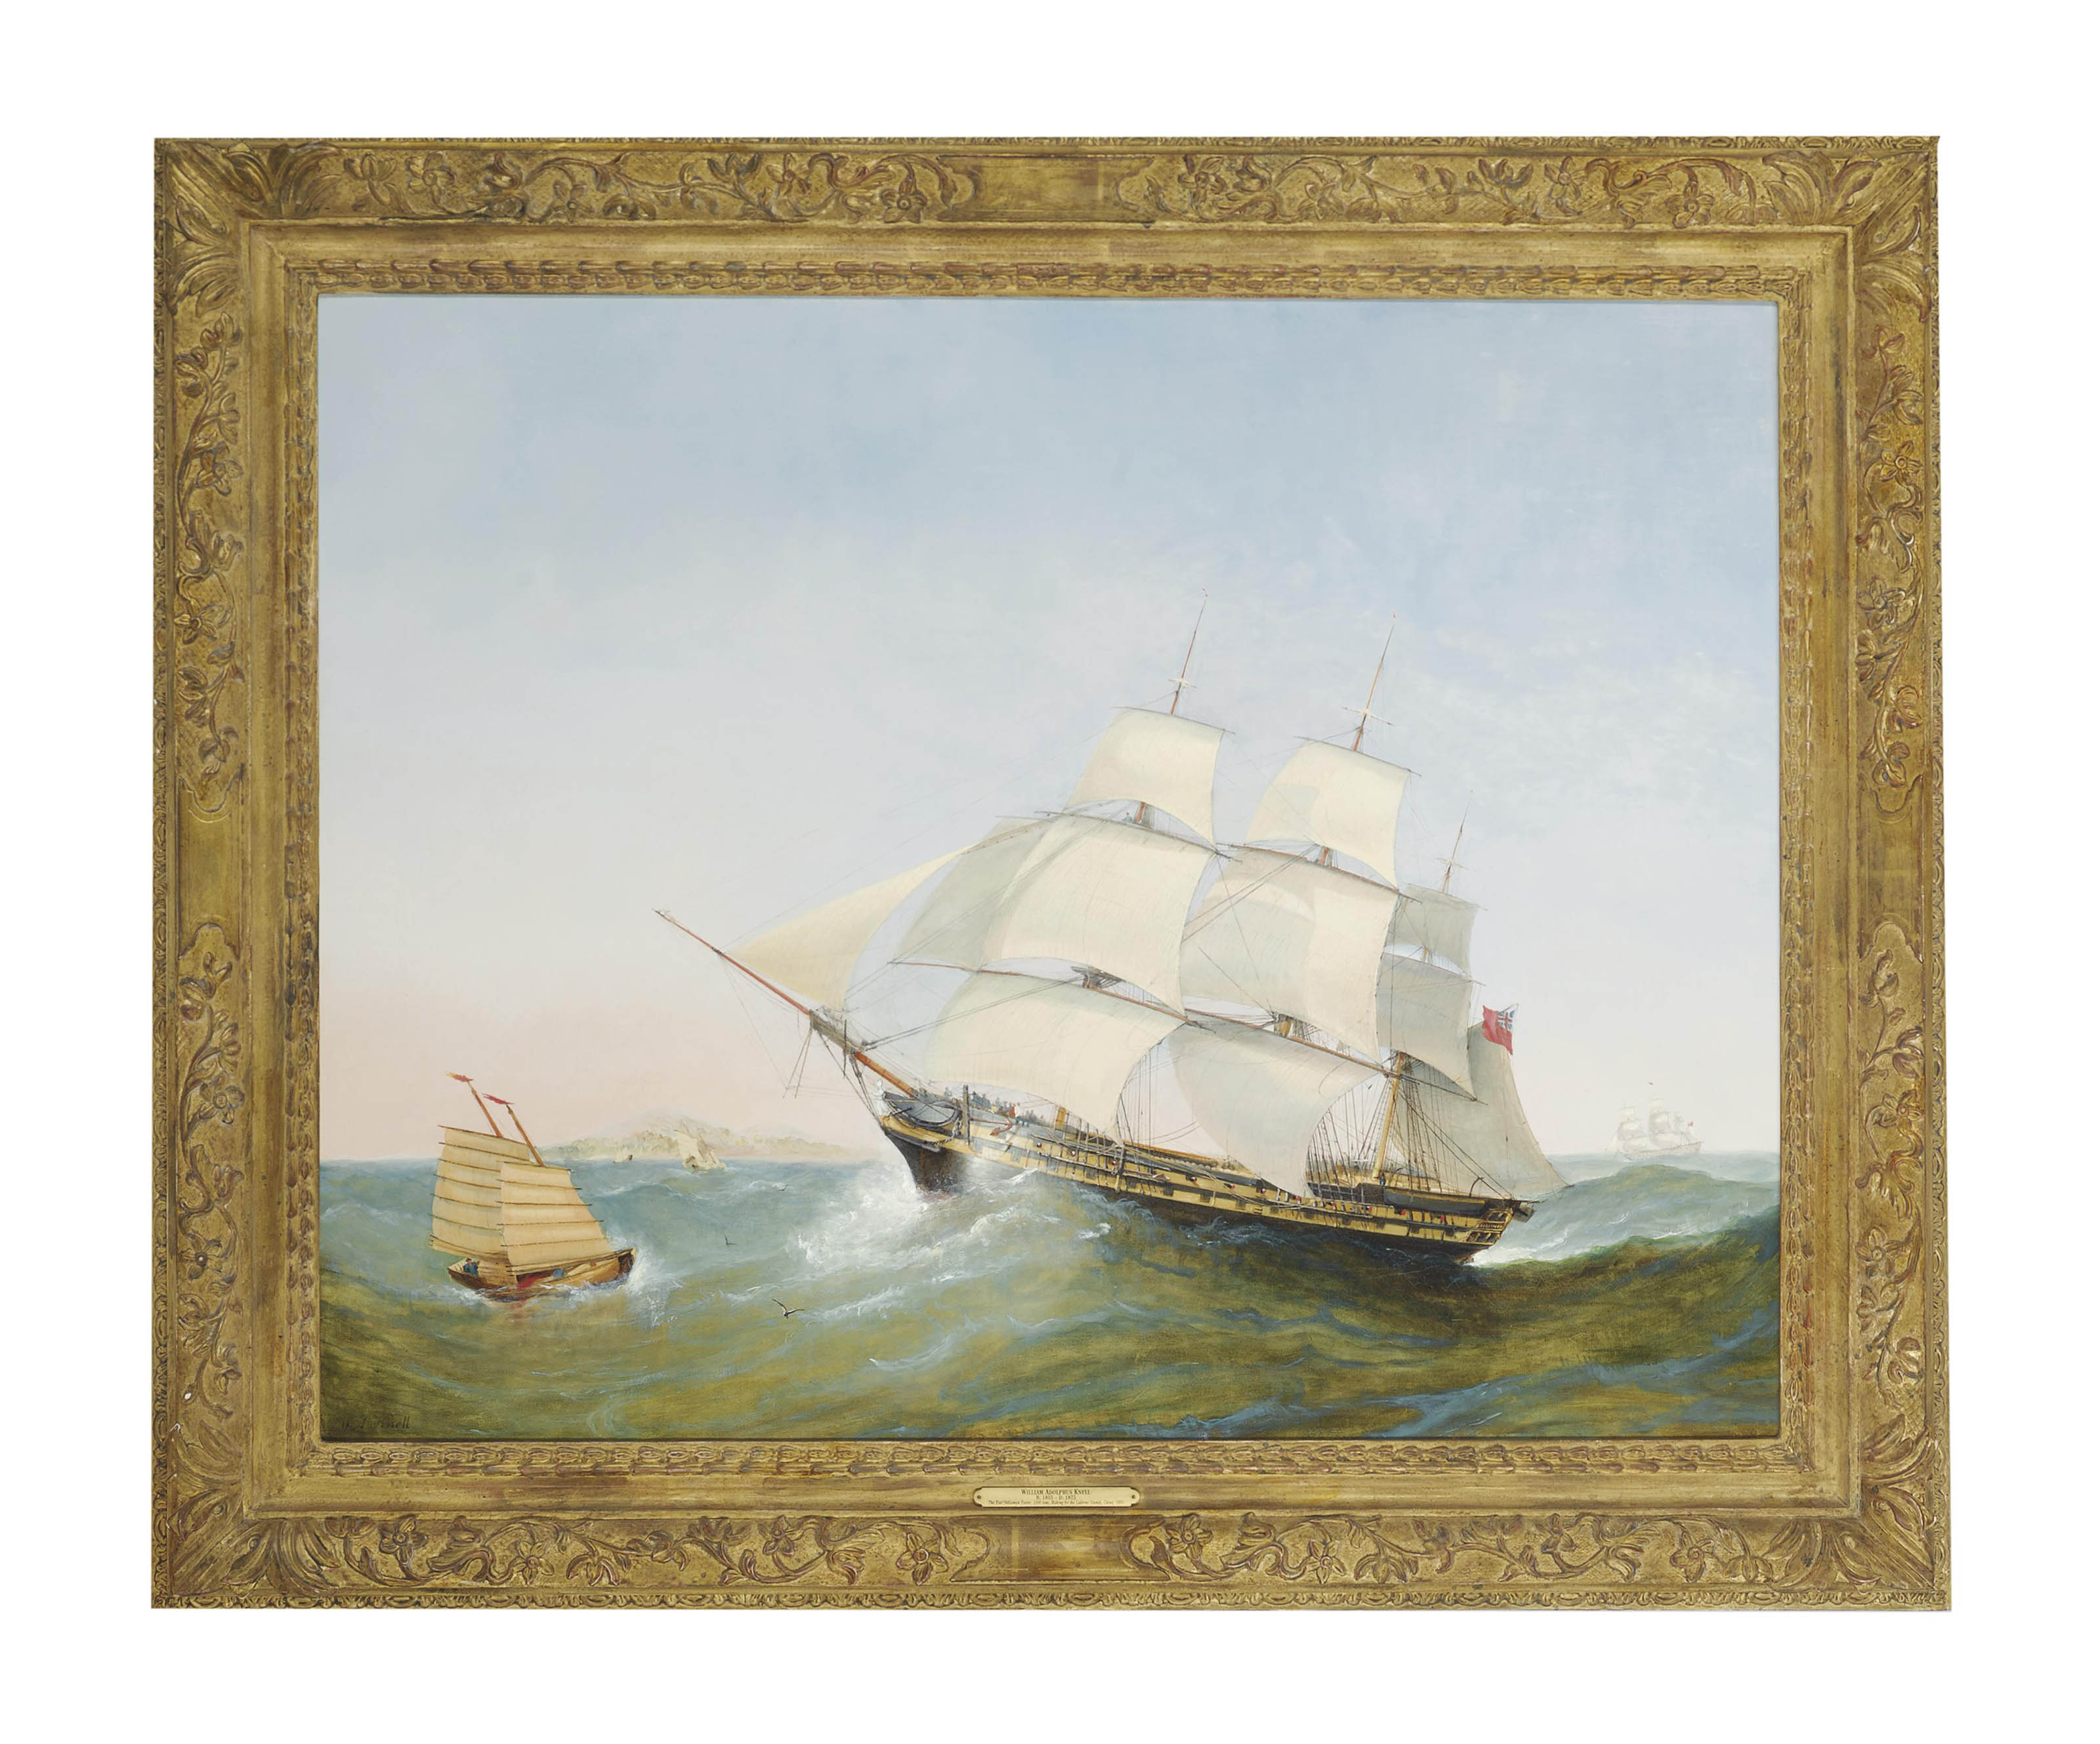 The East Indiaman Exeter making for the Ladrone Islands, China, 1805